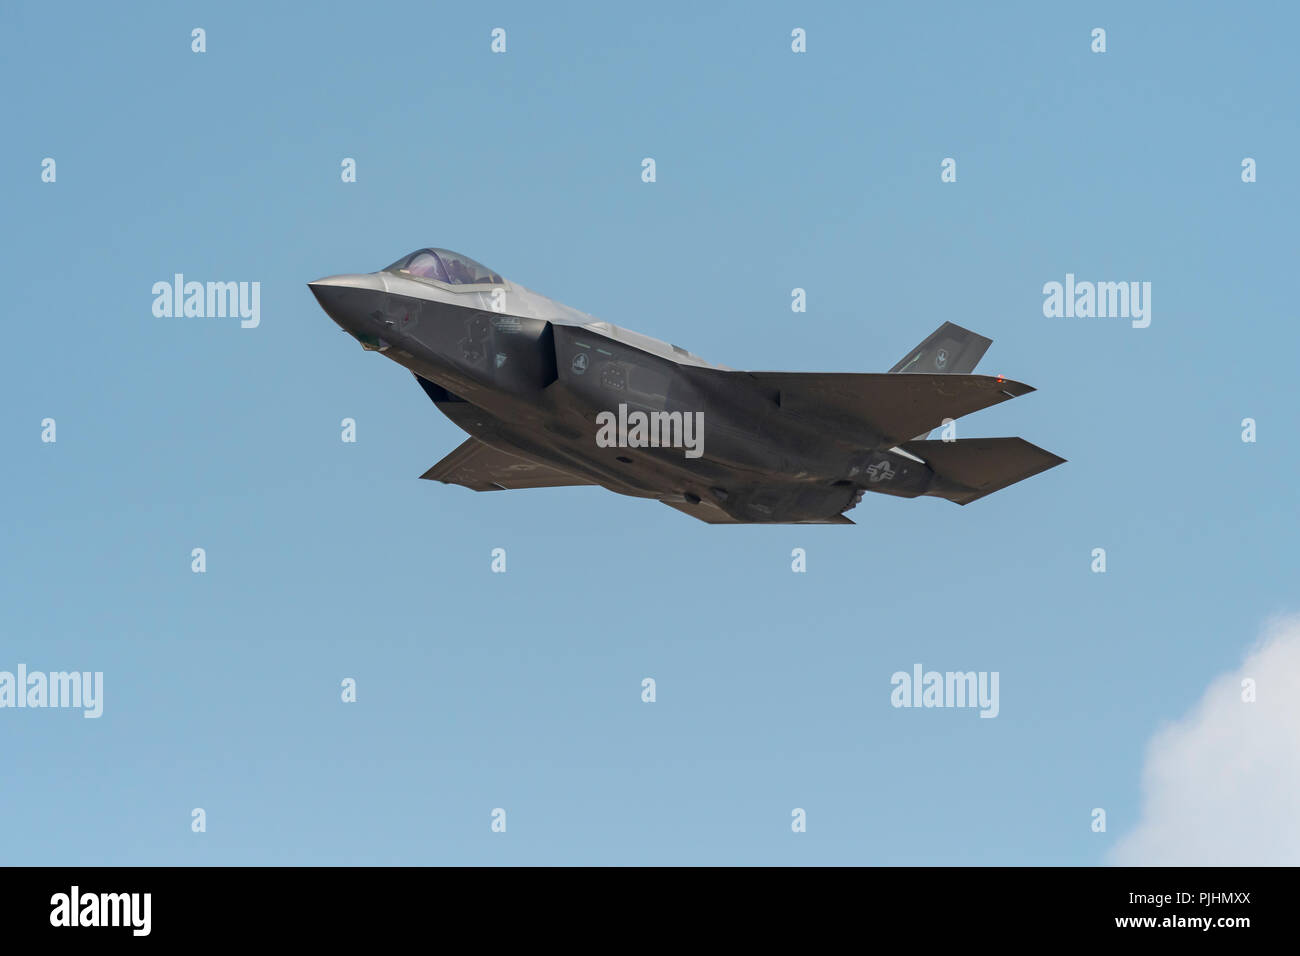 USAF F-35 Lightning, RIAT, RAF Fairford, UK Stock Photo